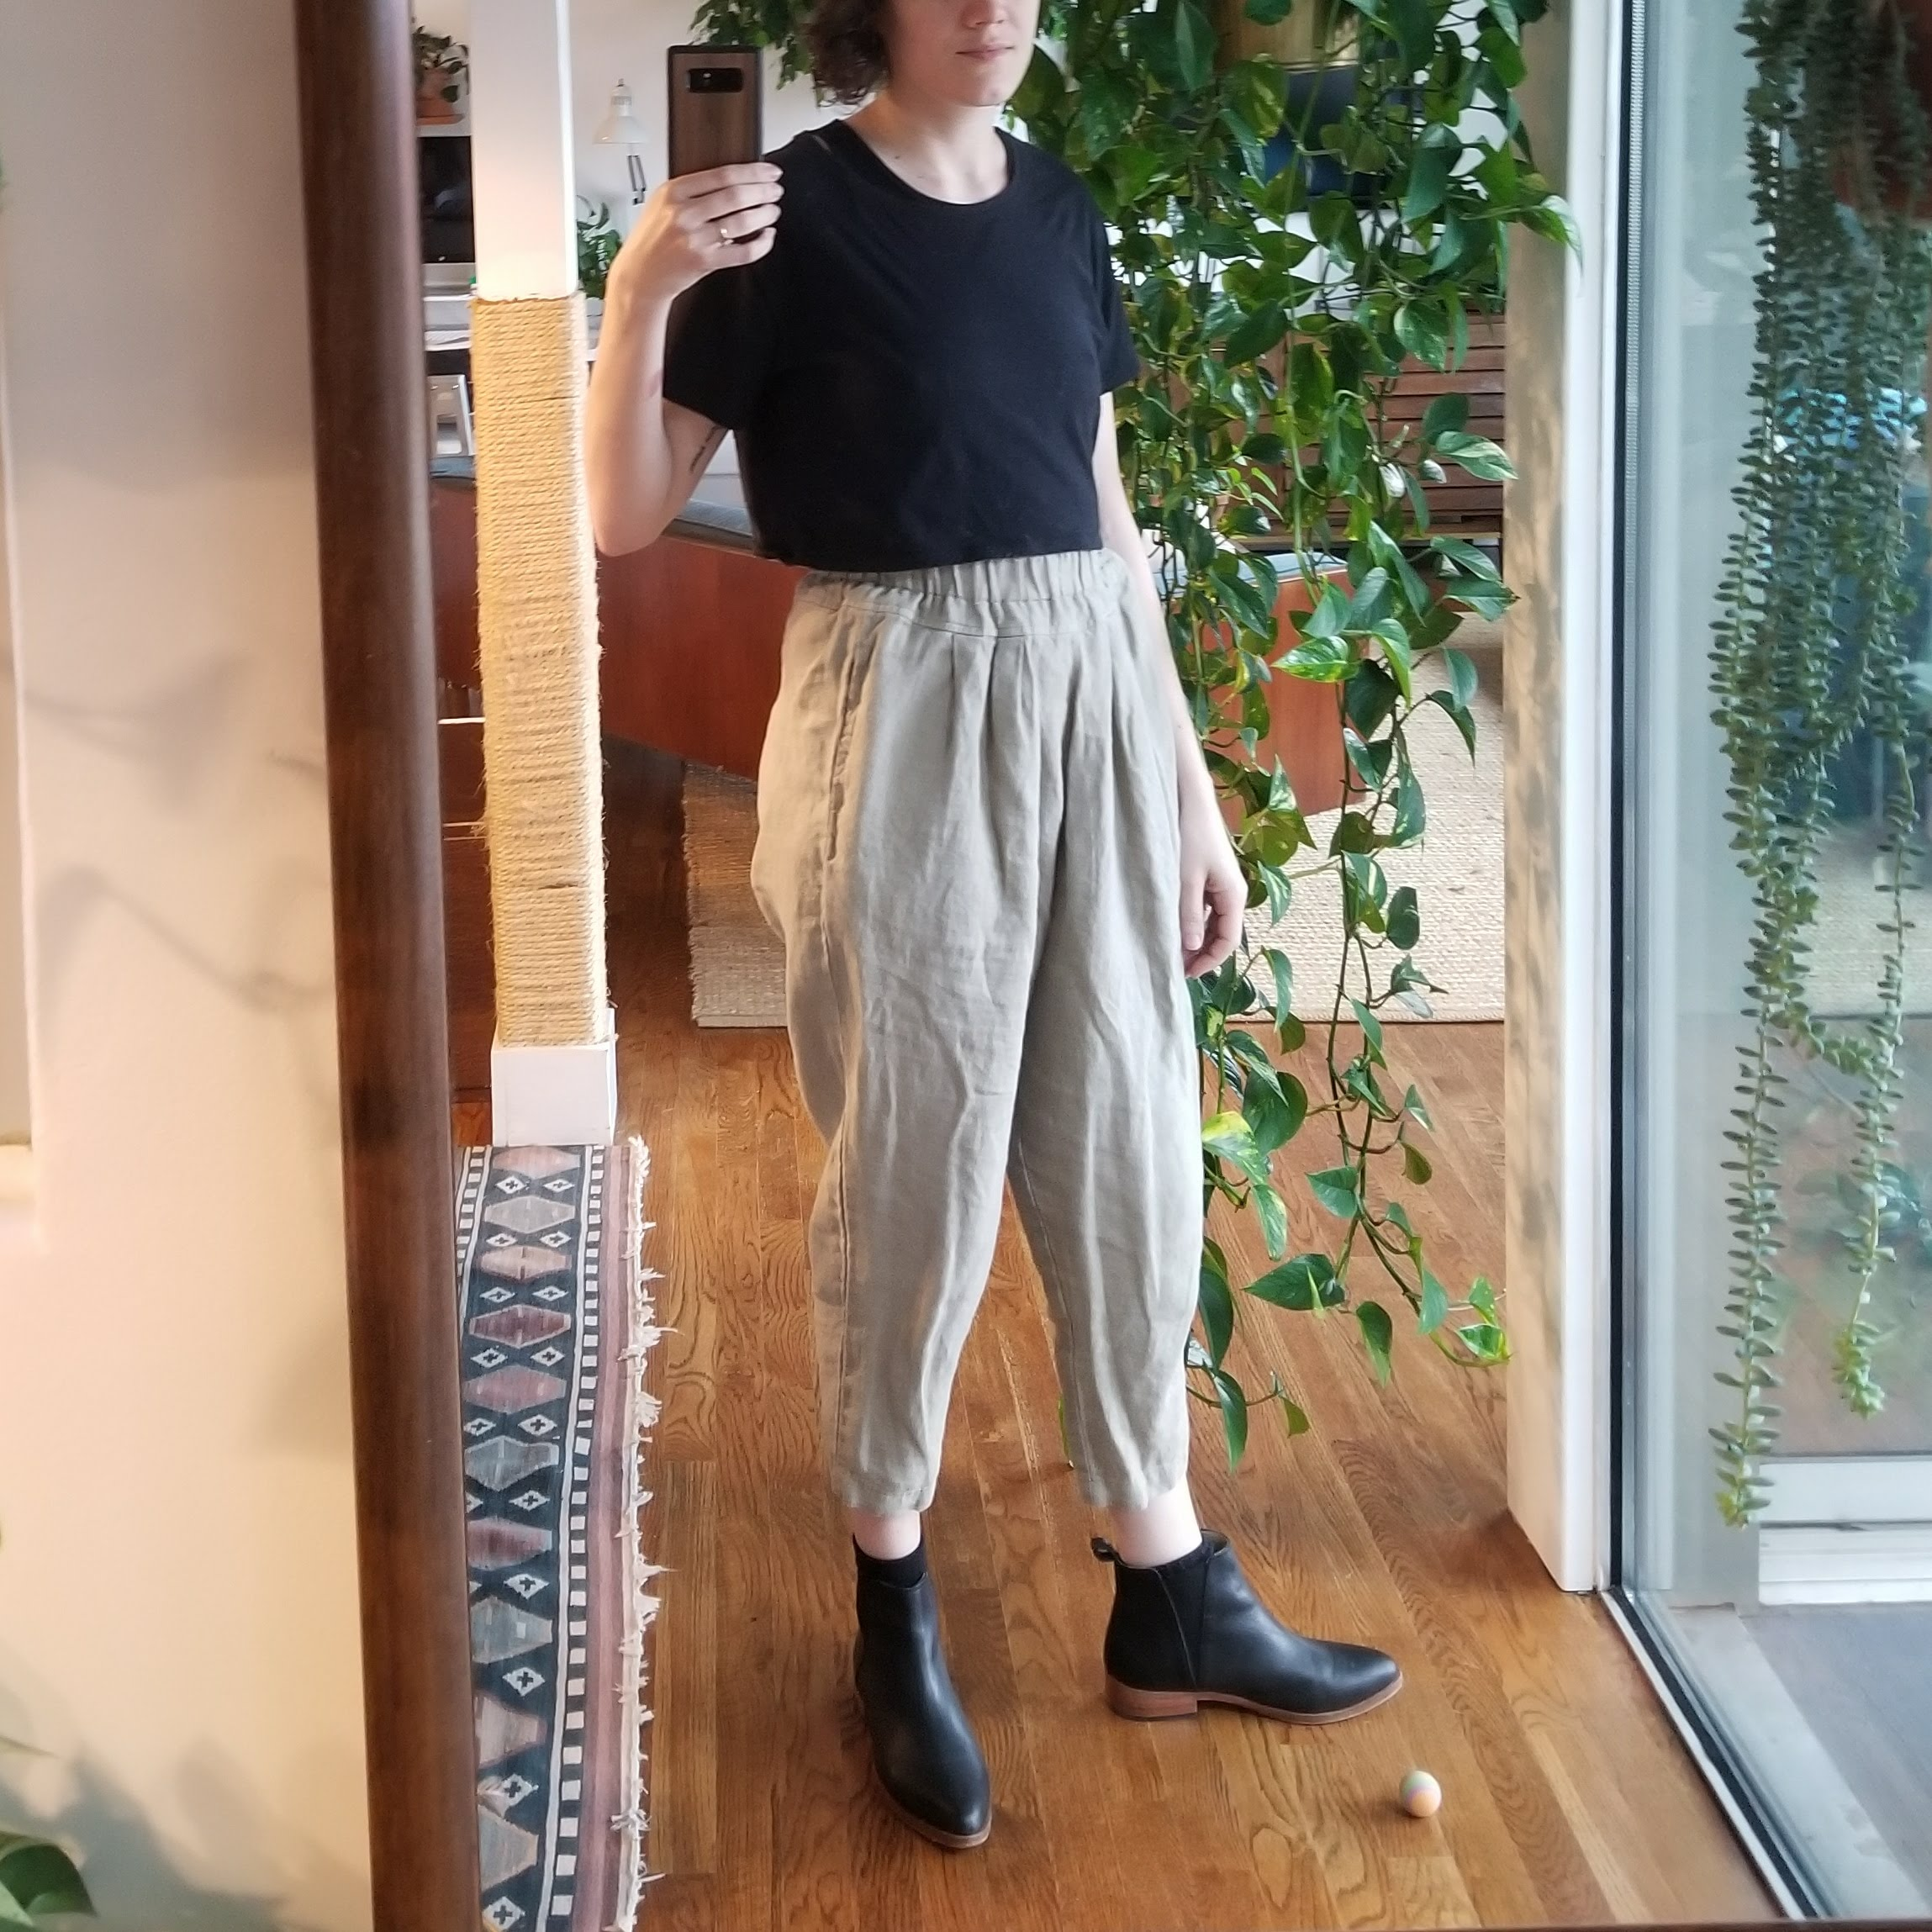 Saturday - March 17, 2018Errand to the hardware store in this outfit before cloistering up for the rest of the weekend working on bathroom finishing touches. The Black Crane carpenter pants look a little silly with boots, just four inches of bright white ankle showing. These pants definitely look better with a ballet flat or sandal. Noted!